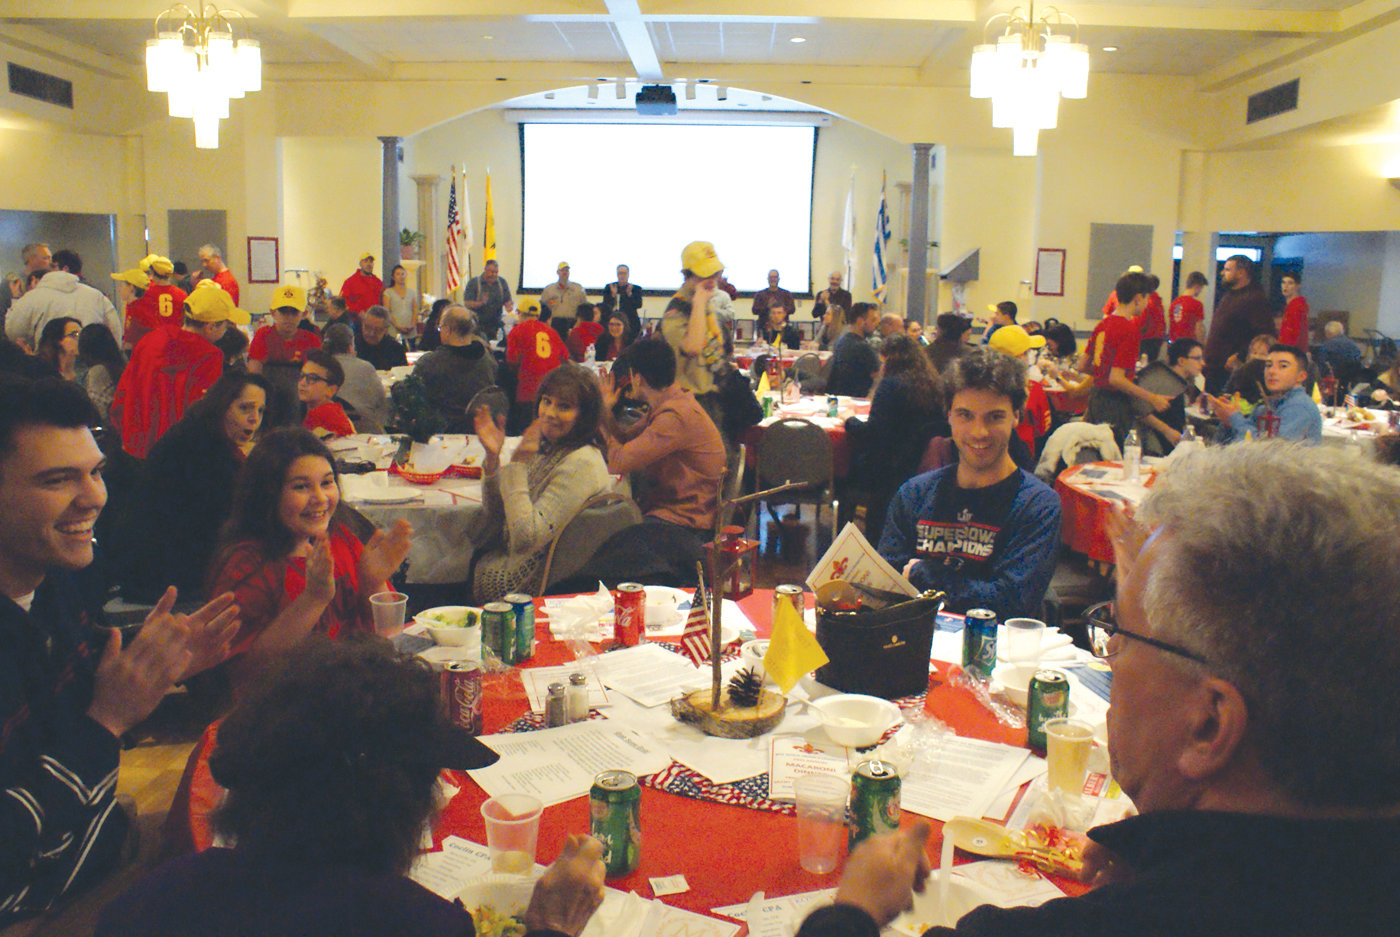 PACKED HOUSE: It was a full house during Troop 6 Cranston's 28th annual Macaroni Dinner on Sunday. Scouts not only planned the event, but they also served food for approximately 300 visitors.